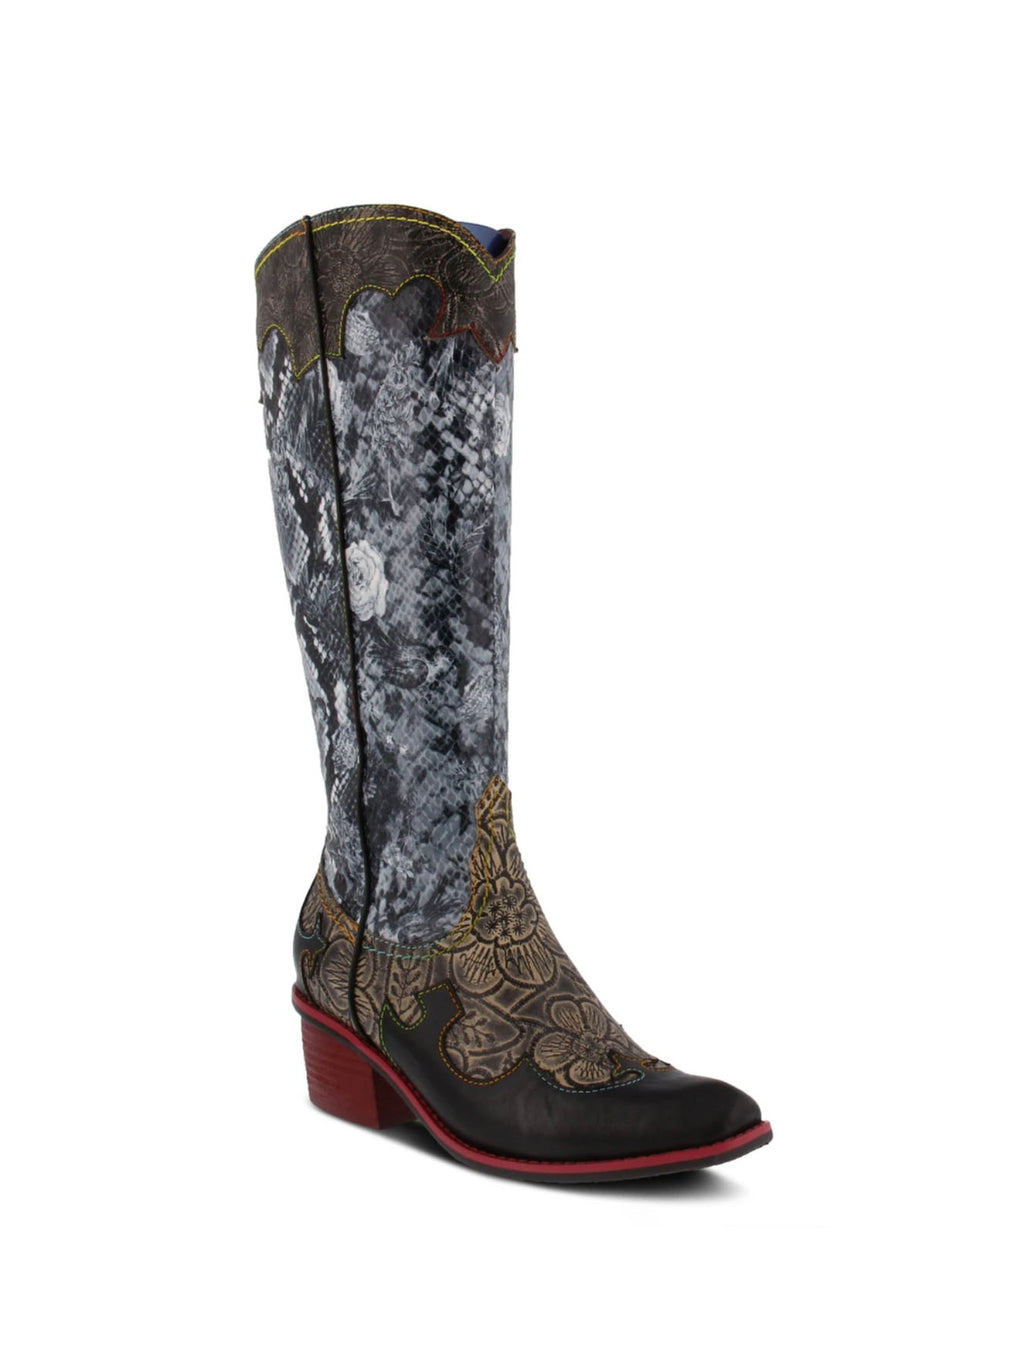 L'Artiste Rodeo Boot in Black Multi